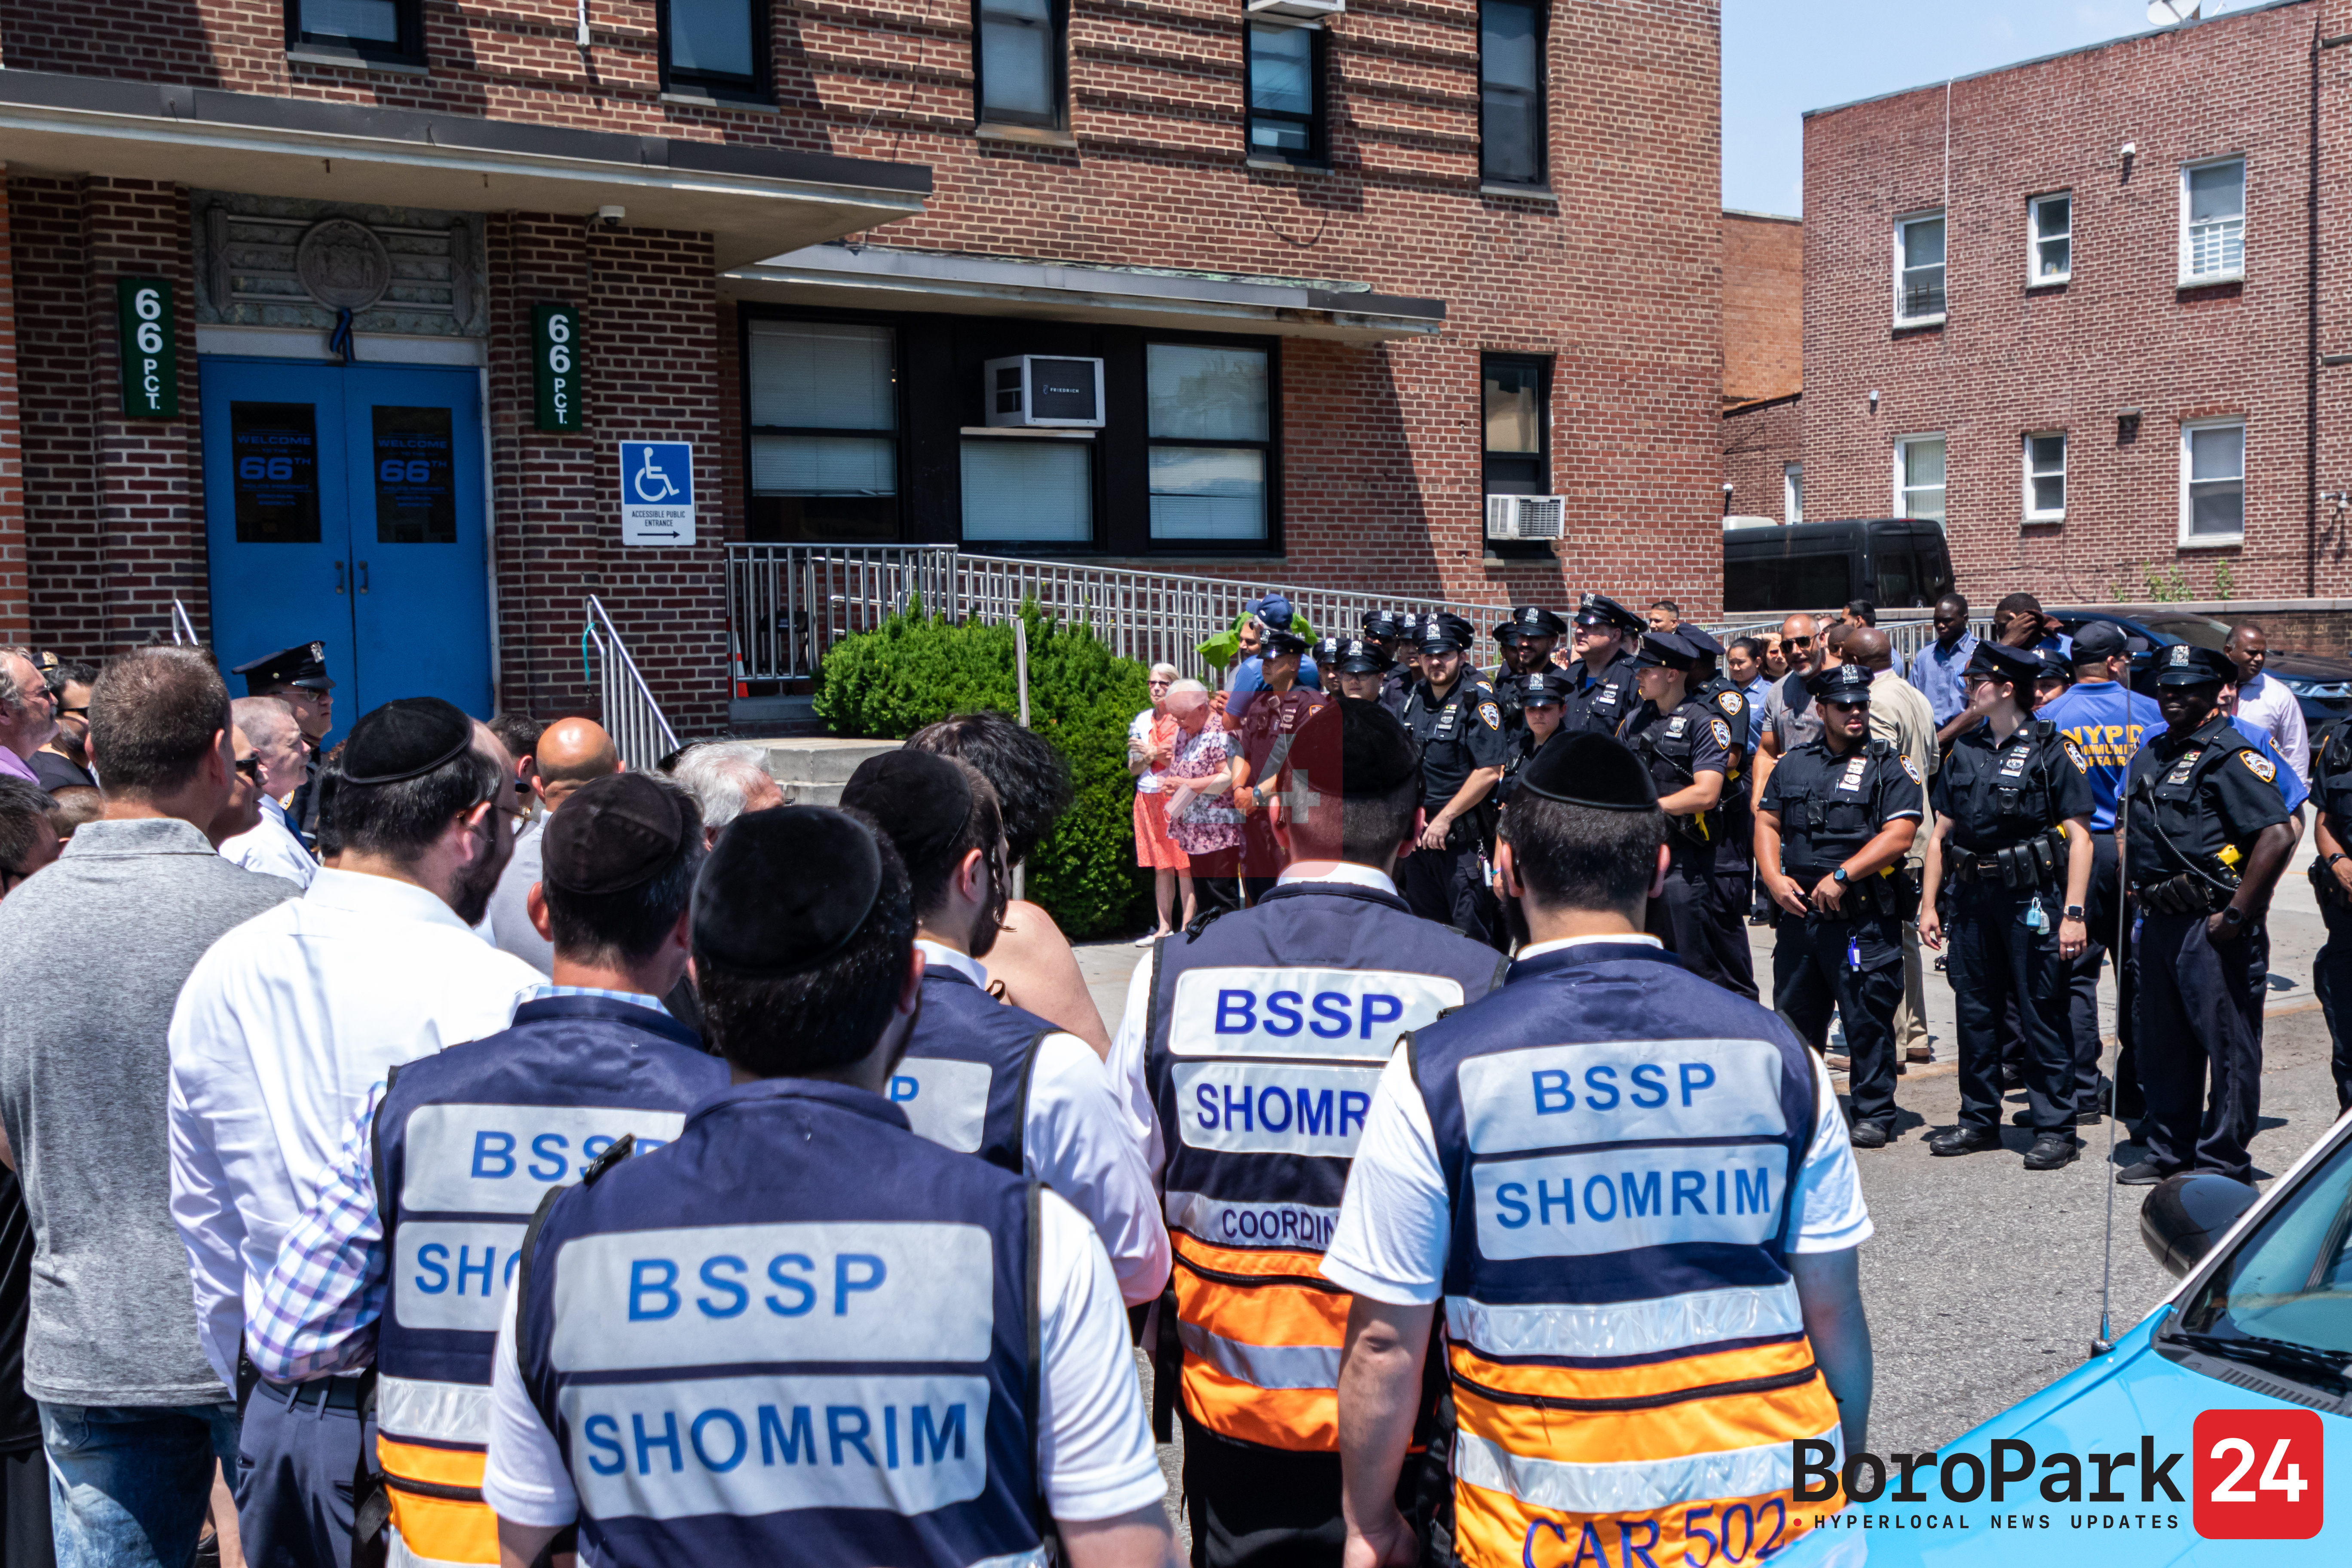 Boro Park Police Officer Retires After 27 Years